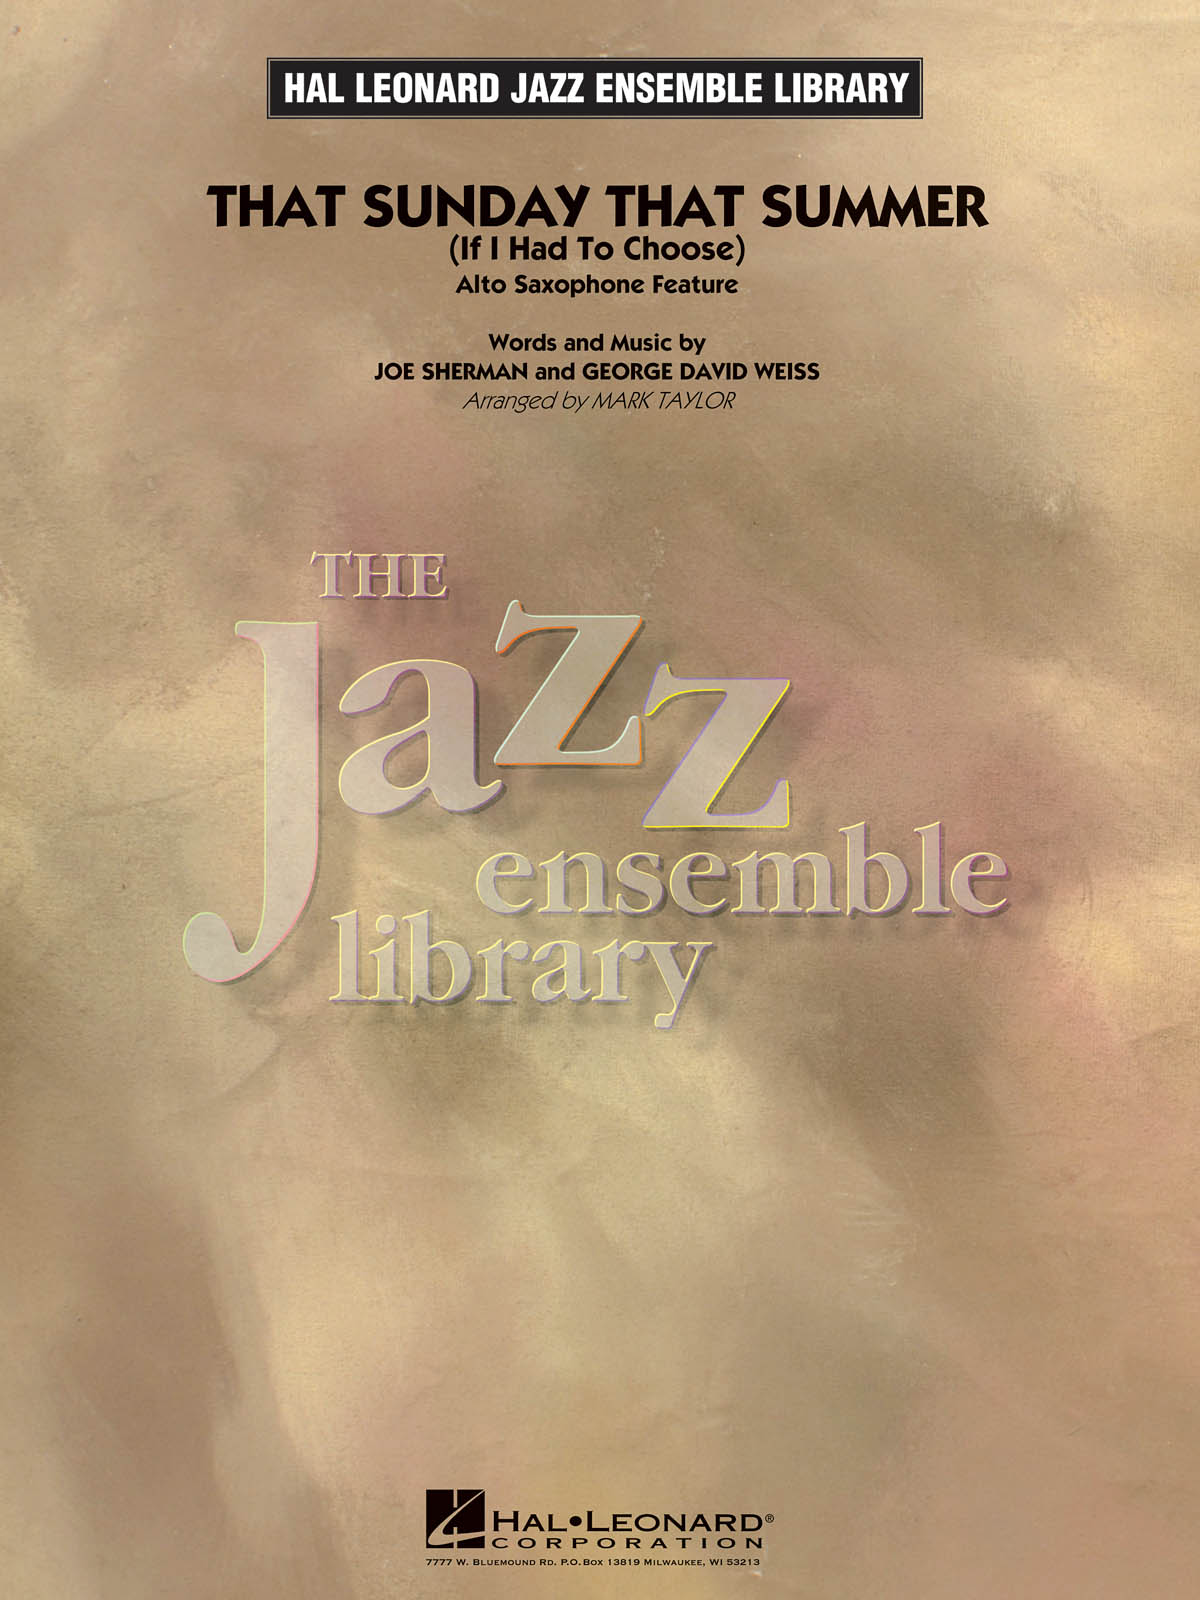 That Sunday That Summer (If I Had to Choose) (Alto Sax Feature): The Jazz Ensemble Library